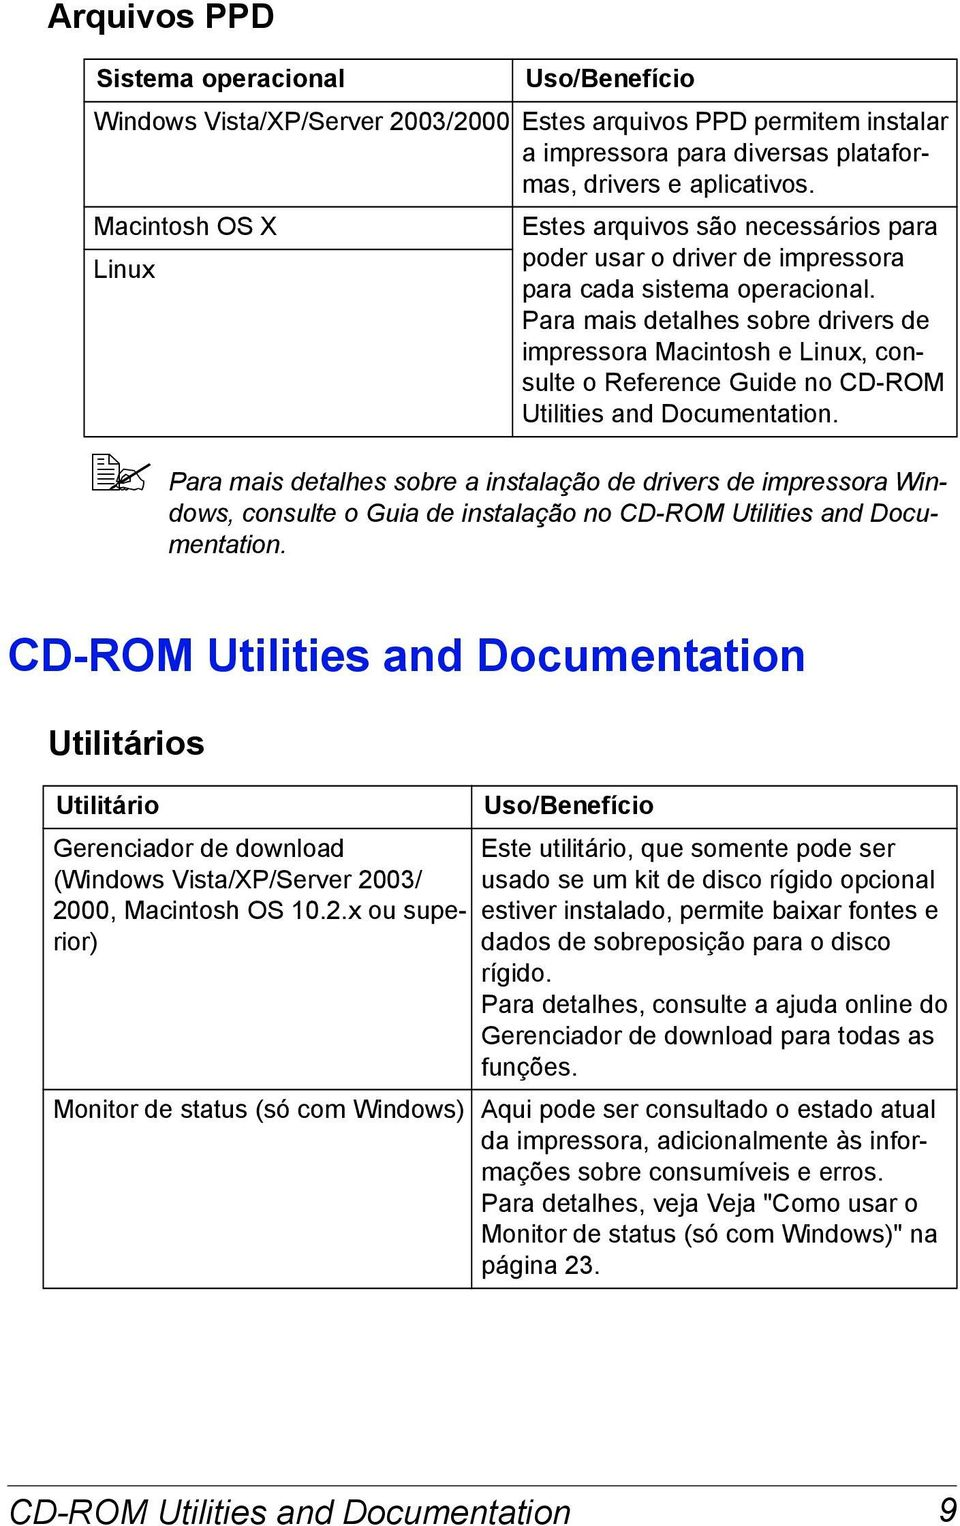 Para mais detalhes sobre drivers de impressora Macintosh e Linux, consulte o Reference Guide no CD-ROM Utilities and Documentation.